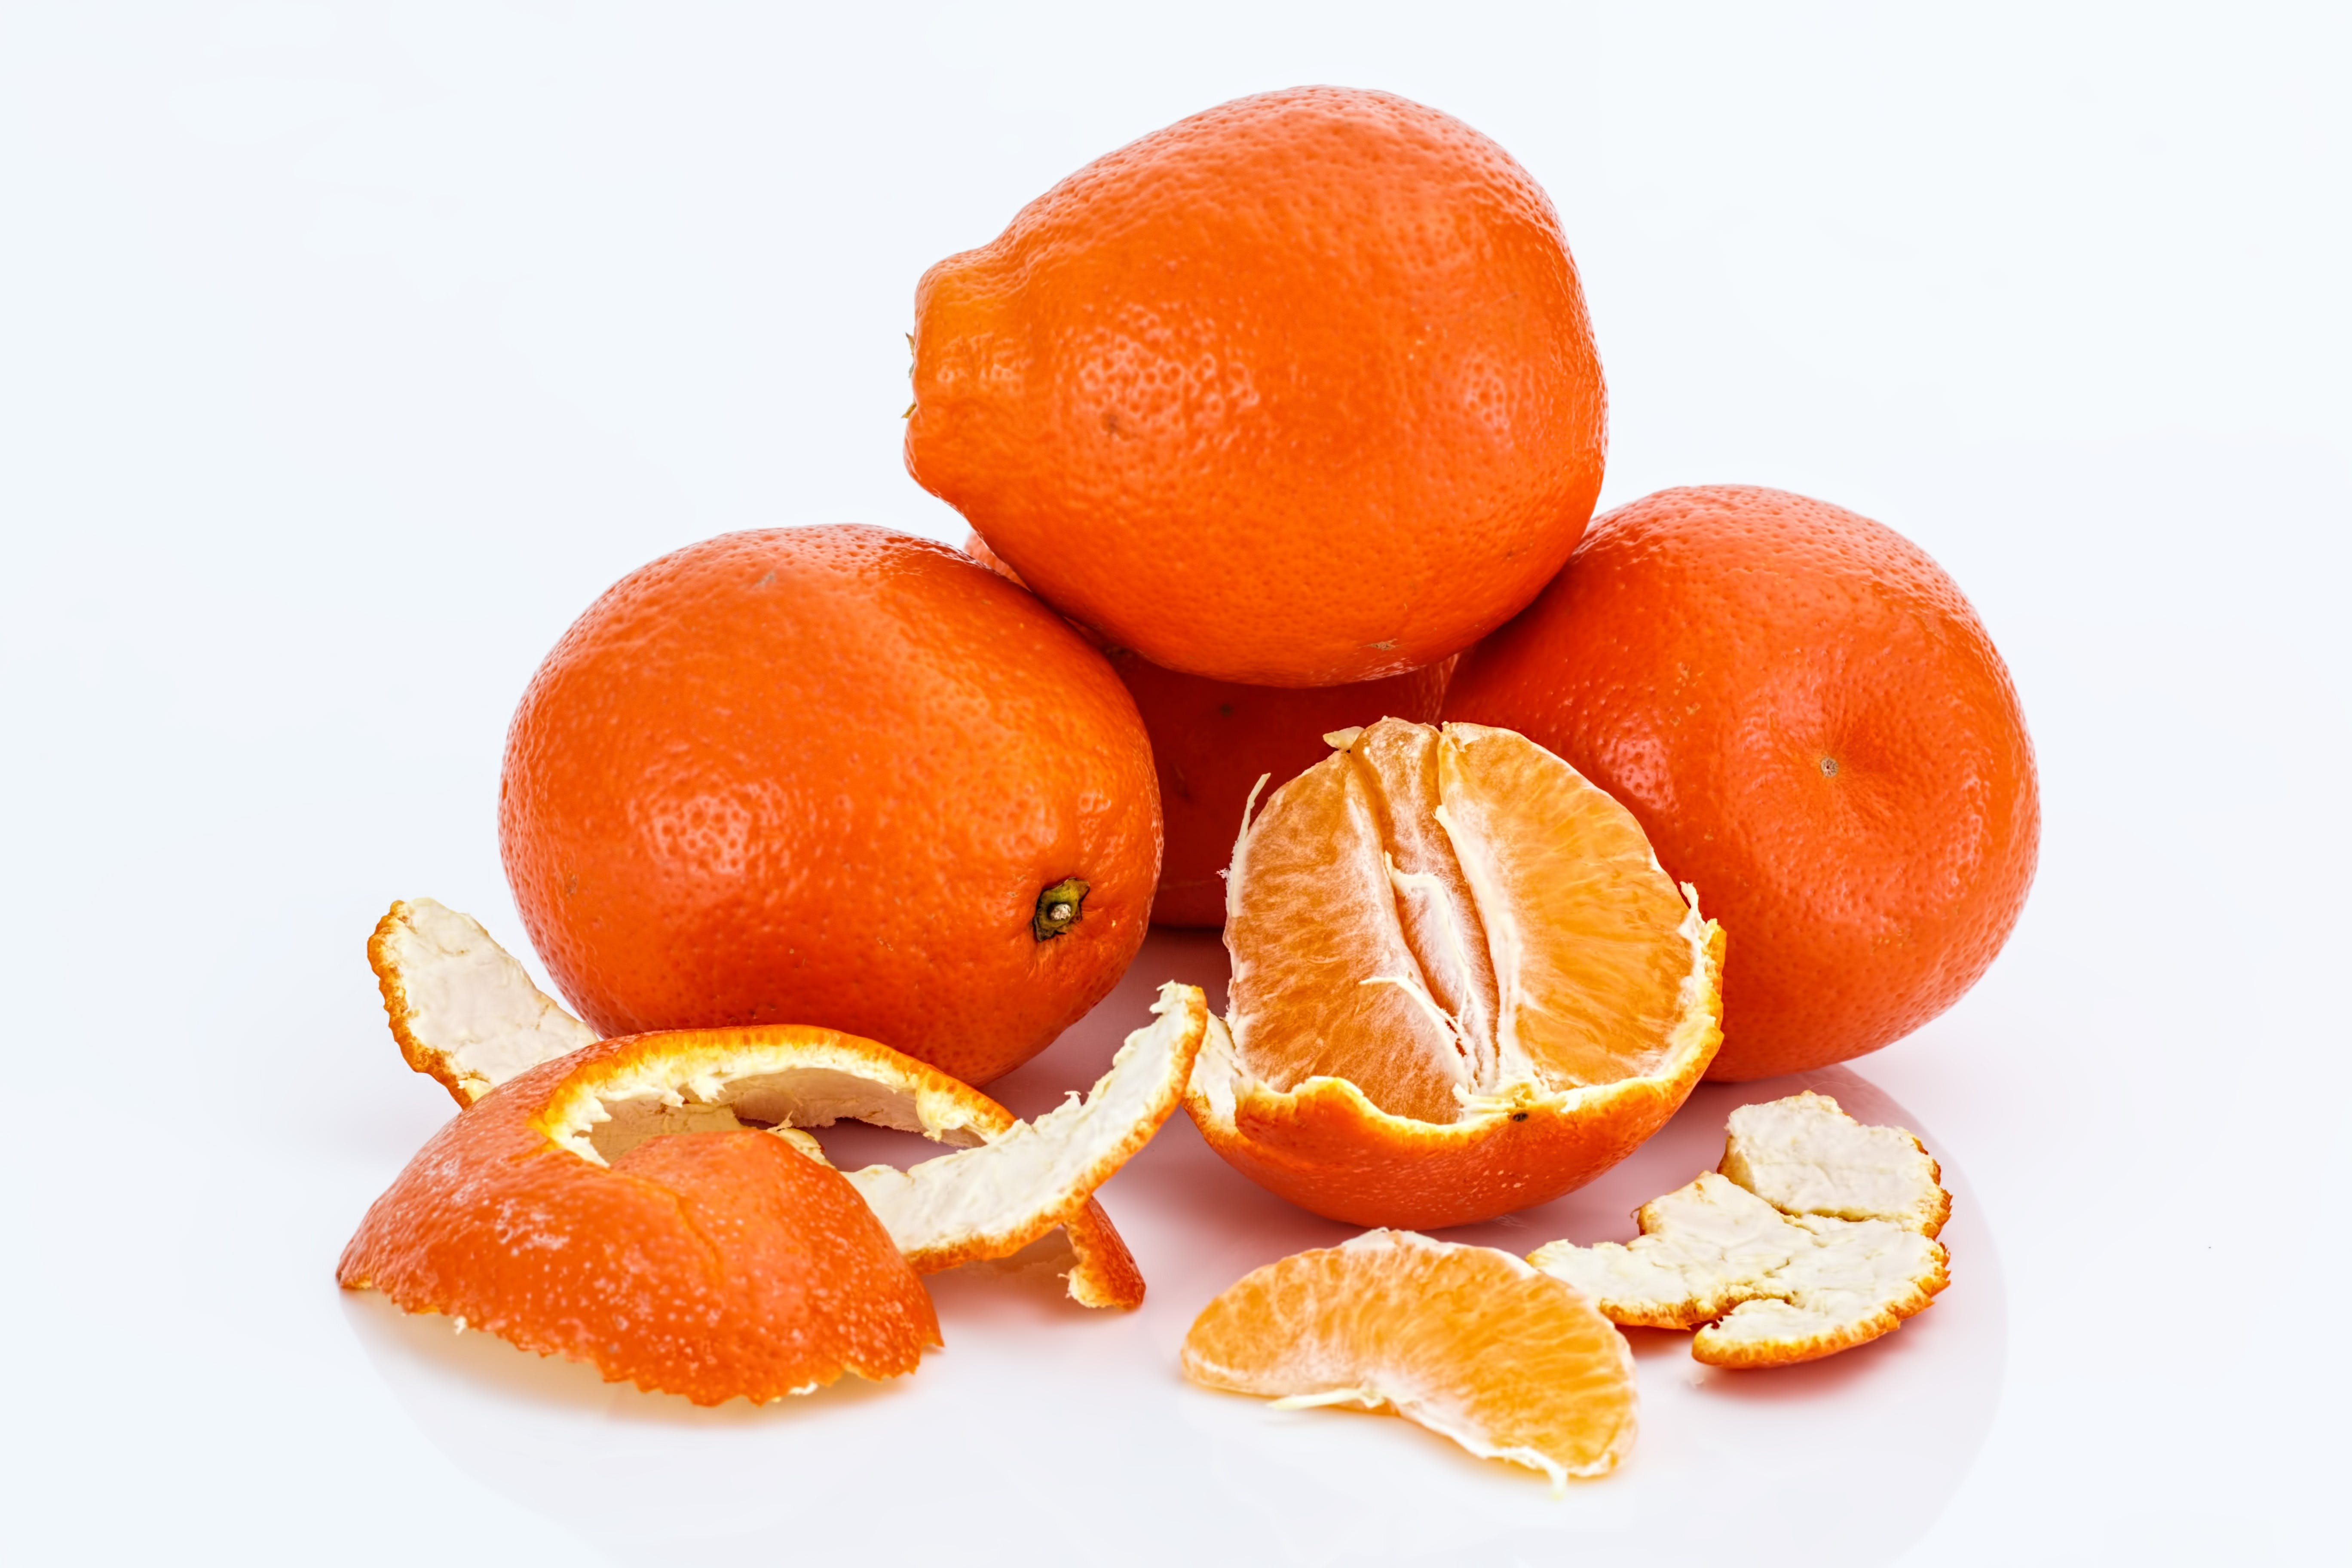 Peeled Orange Fruits